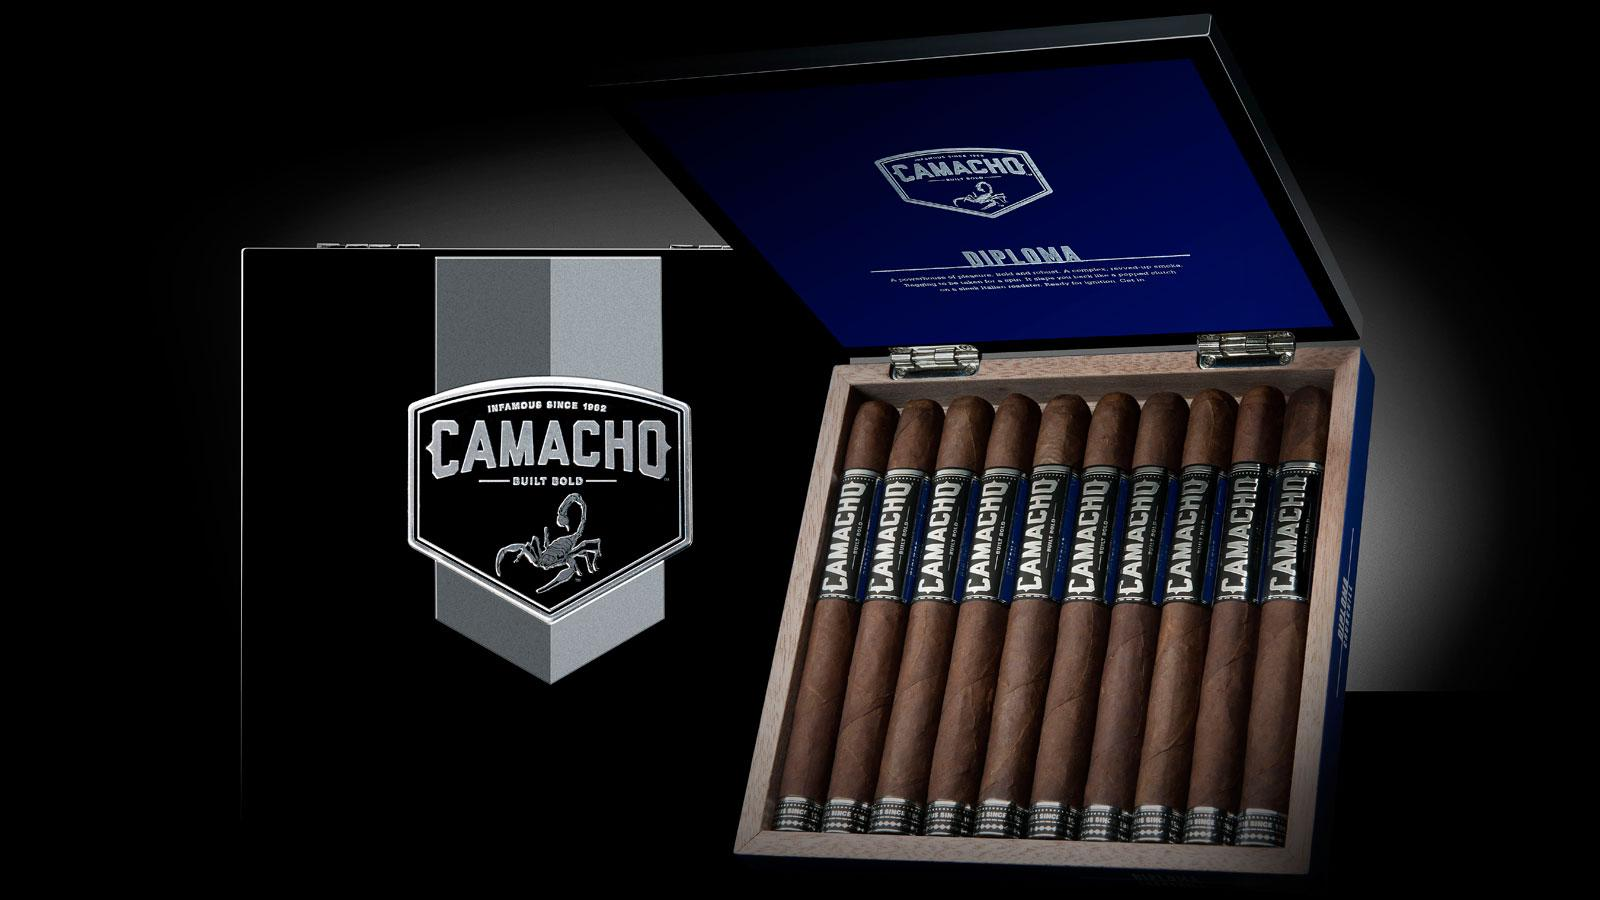 Camacho Revamps Blends, Updates Packaging